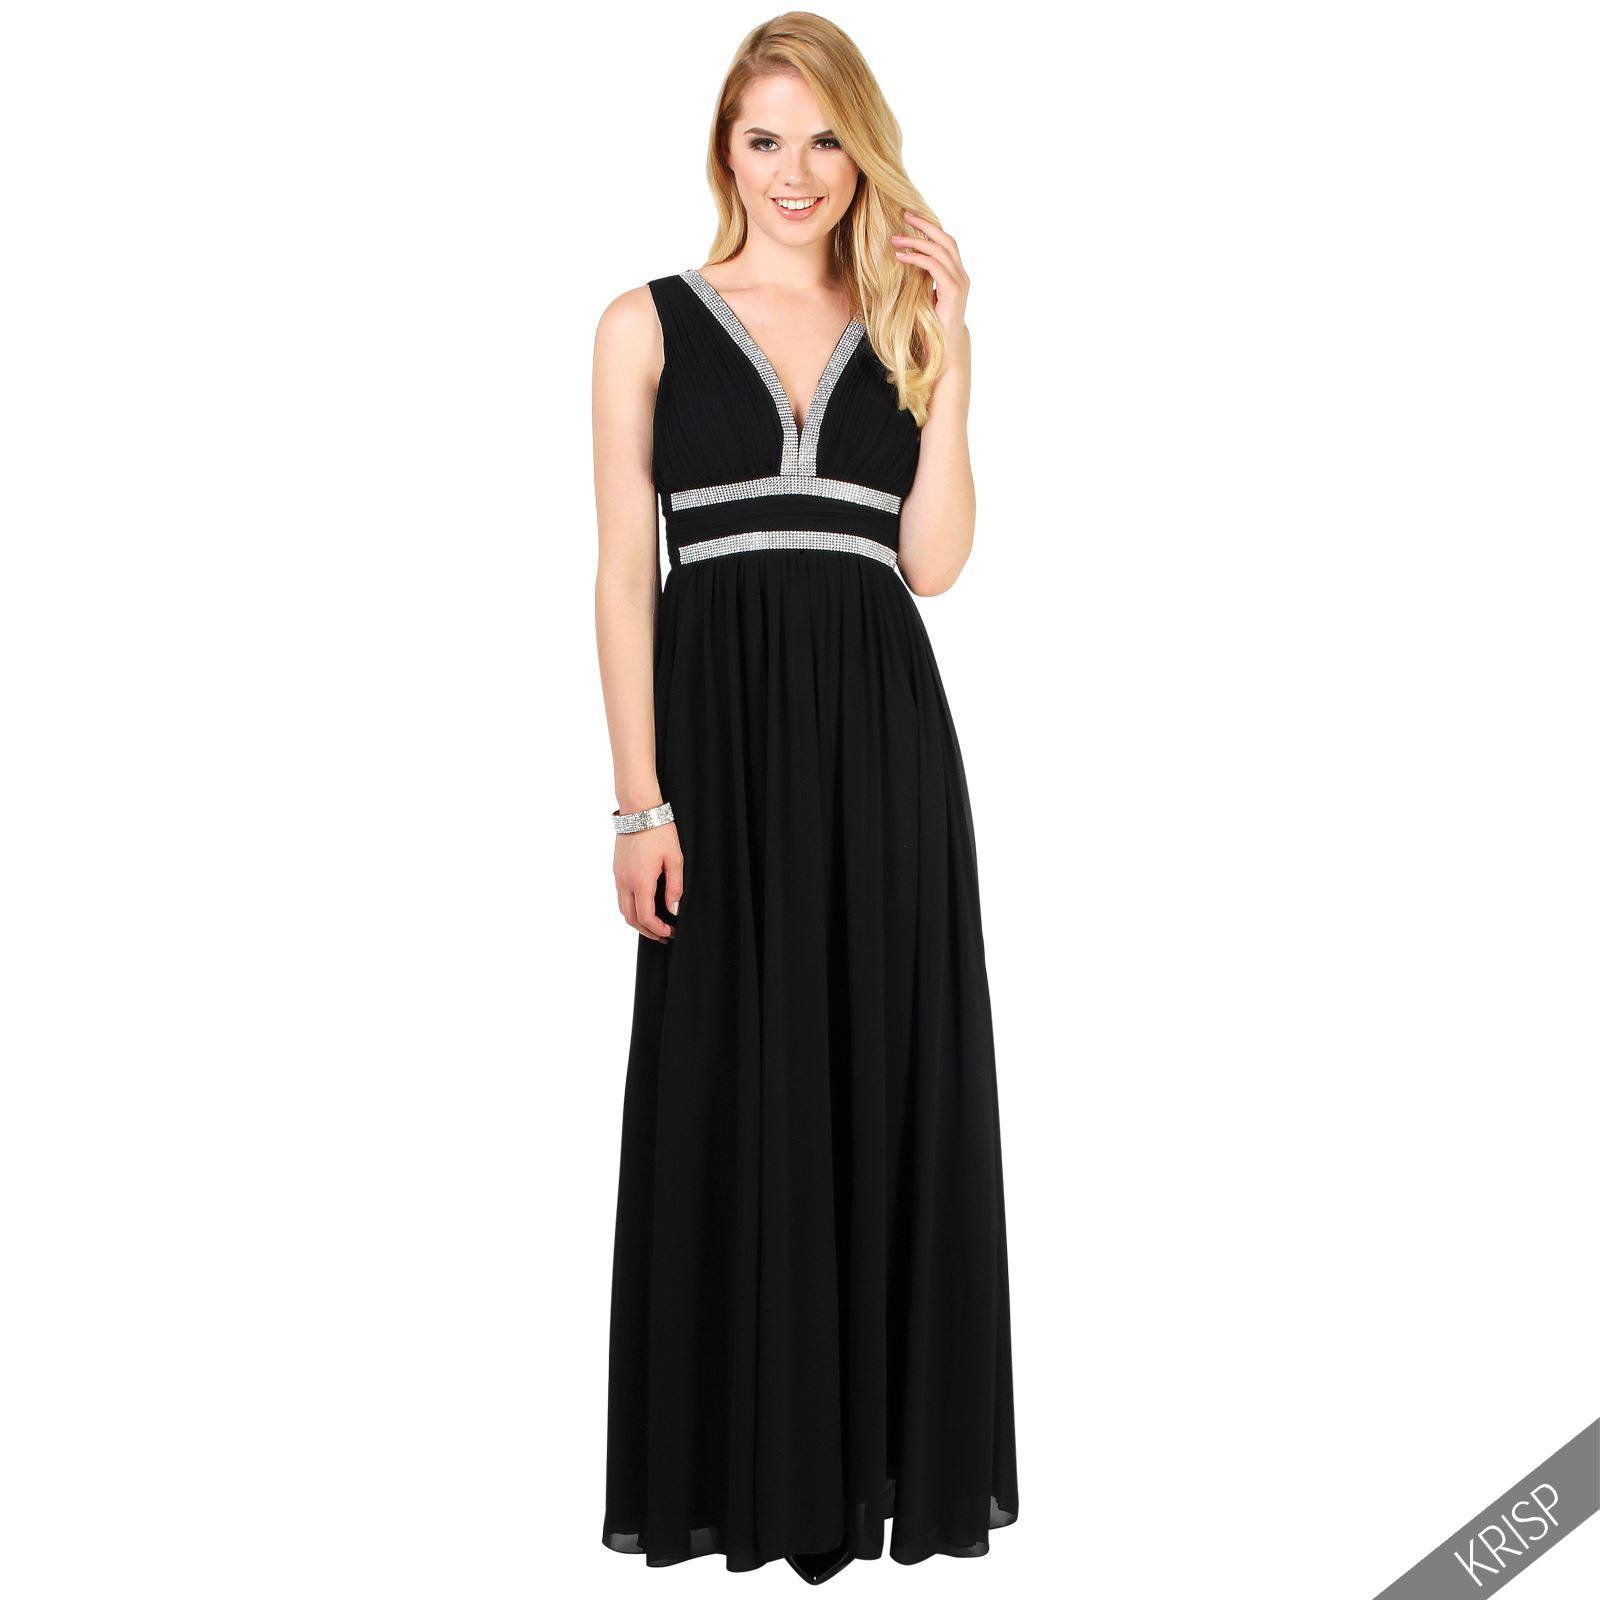 Many fashion styles of evening dresses and gowns. Sexy dresses for everyday discount prices. We have a huge selection of formal wear evening dresses, different styles of cheap formal dresses for sale!